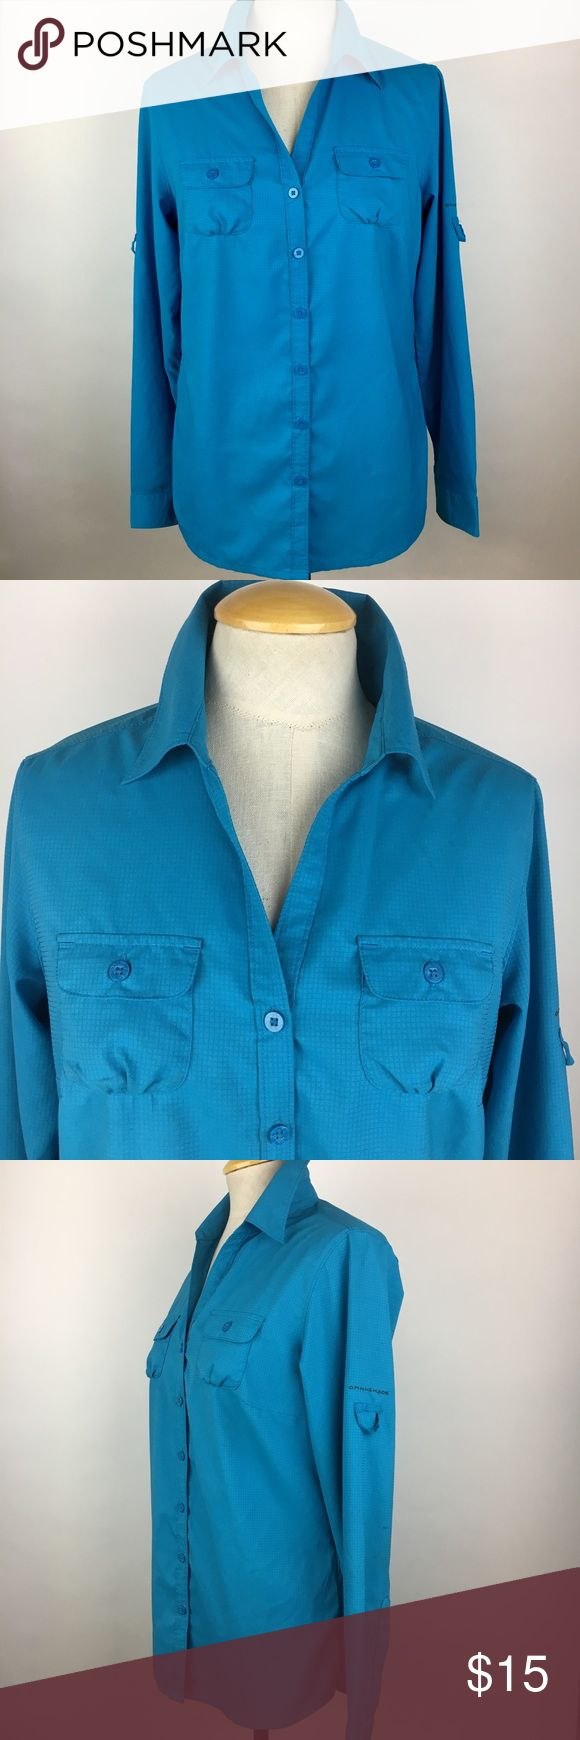 """Columbia Omni-shade Blue Long Sleeve Button Down This Columbia Omni shade long sleeve button up shirt is in very good condition- no rips or stains. There are two areas with some fabric pulls- see last two photos. Omni-shade fabric blocks UVA and UVB rays to help protect you from the sun during your travels, adventures and everyday. Size small. Measurements: Bust- 36"""" Waist- 34"""" 25"""" long 23.5"""" long sleeves Columbia Tops Button Down Shirts"""